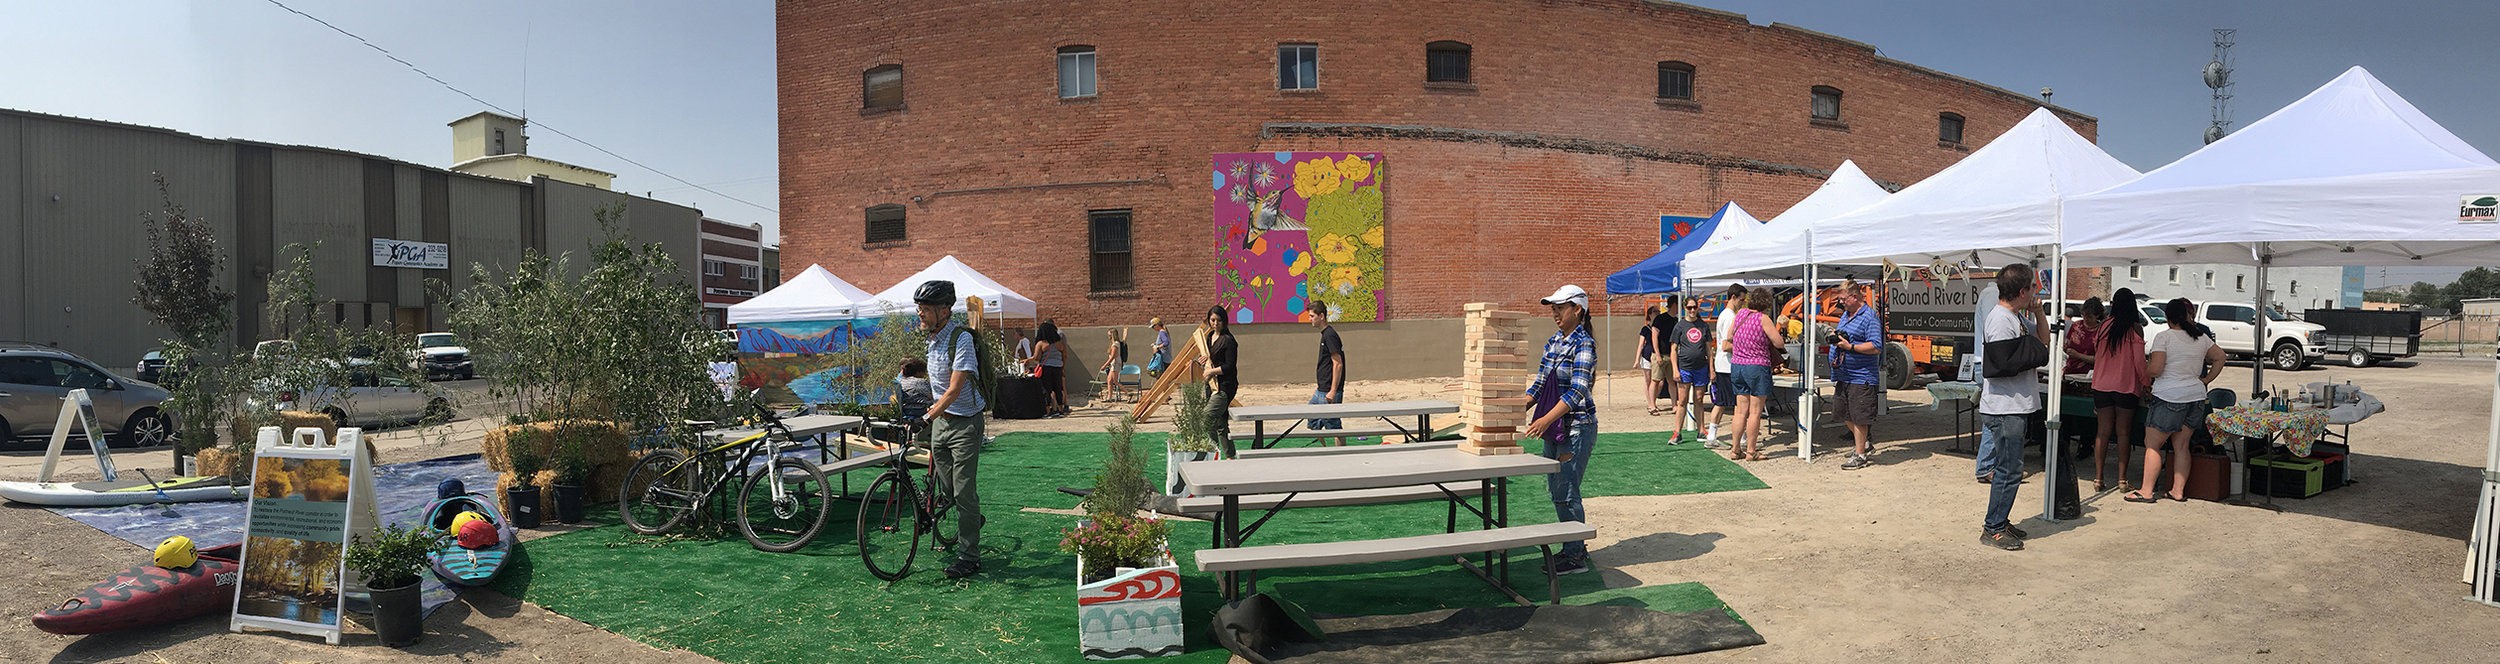 The Pop-Up Park had vendors, food, hydration station, public art, outdoor games, seating, landscaping, and a selfie stop.